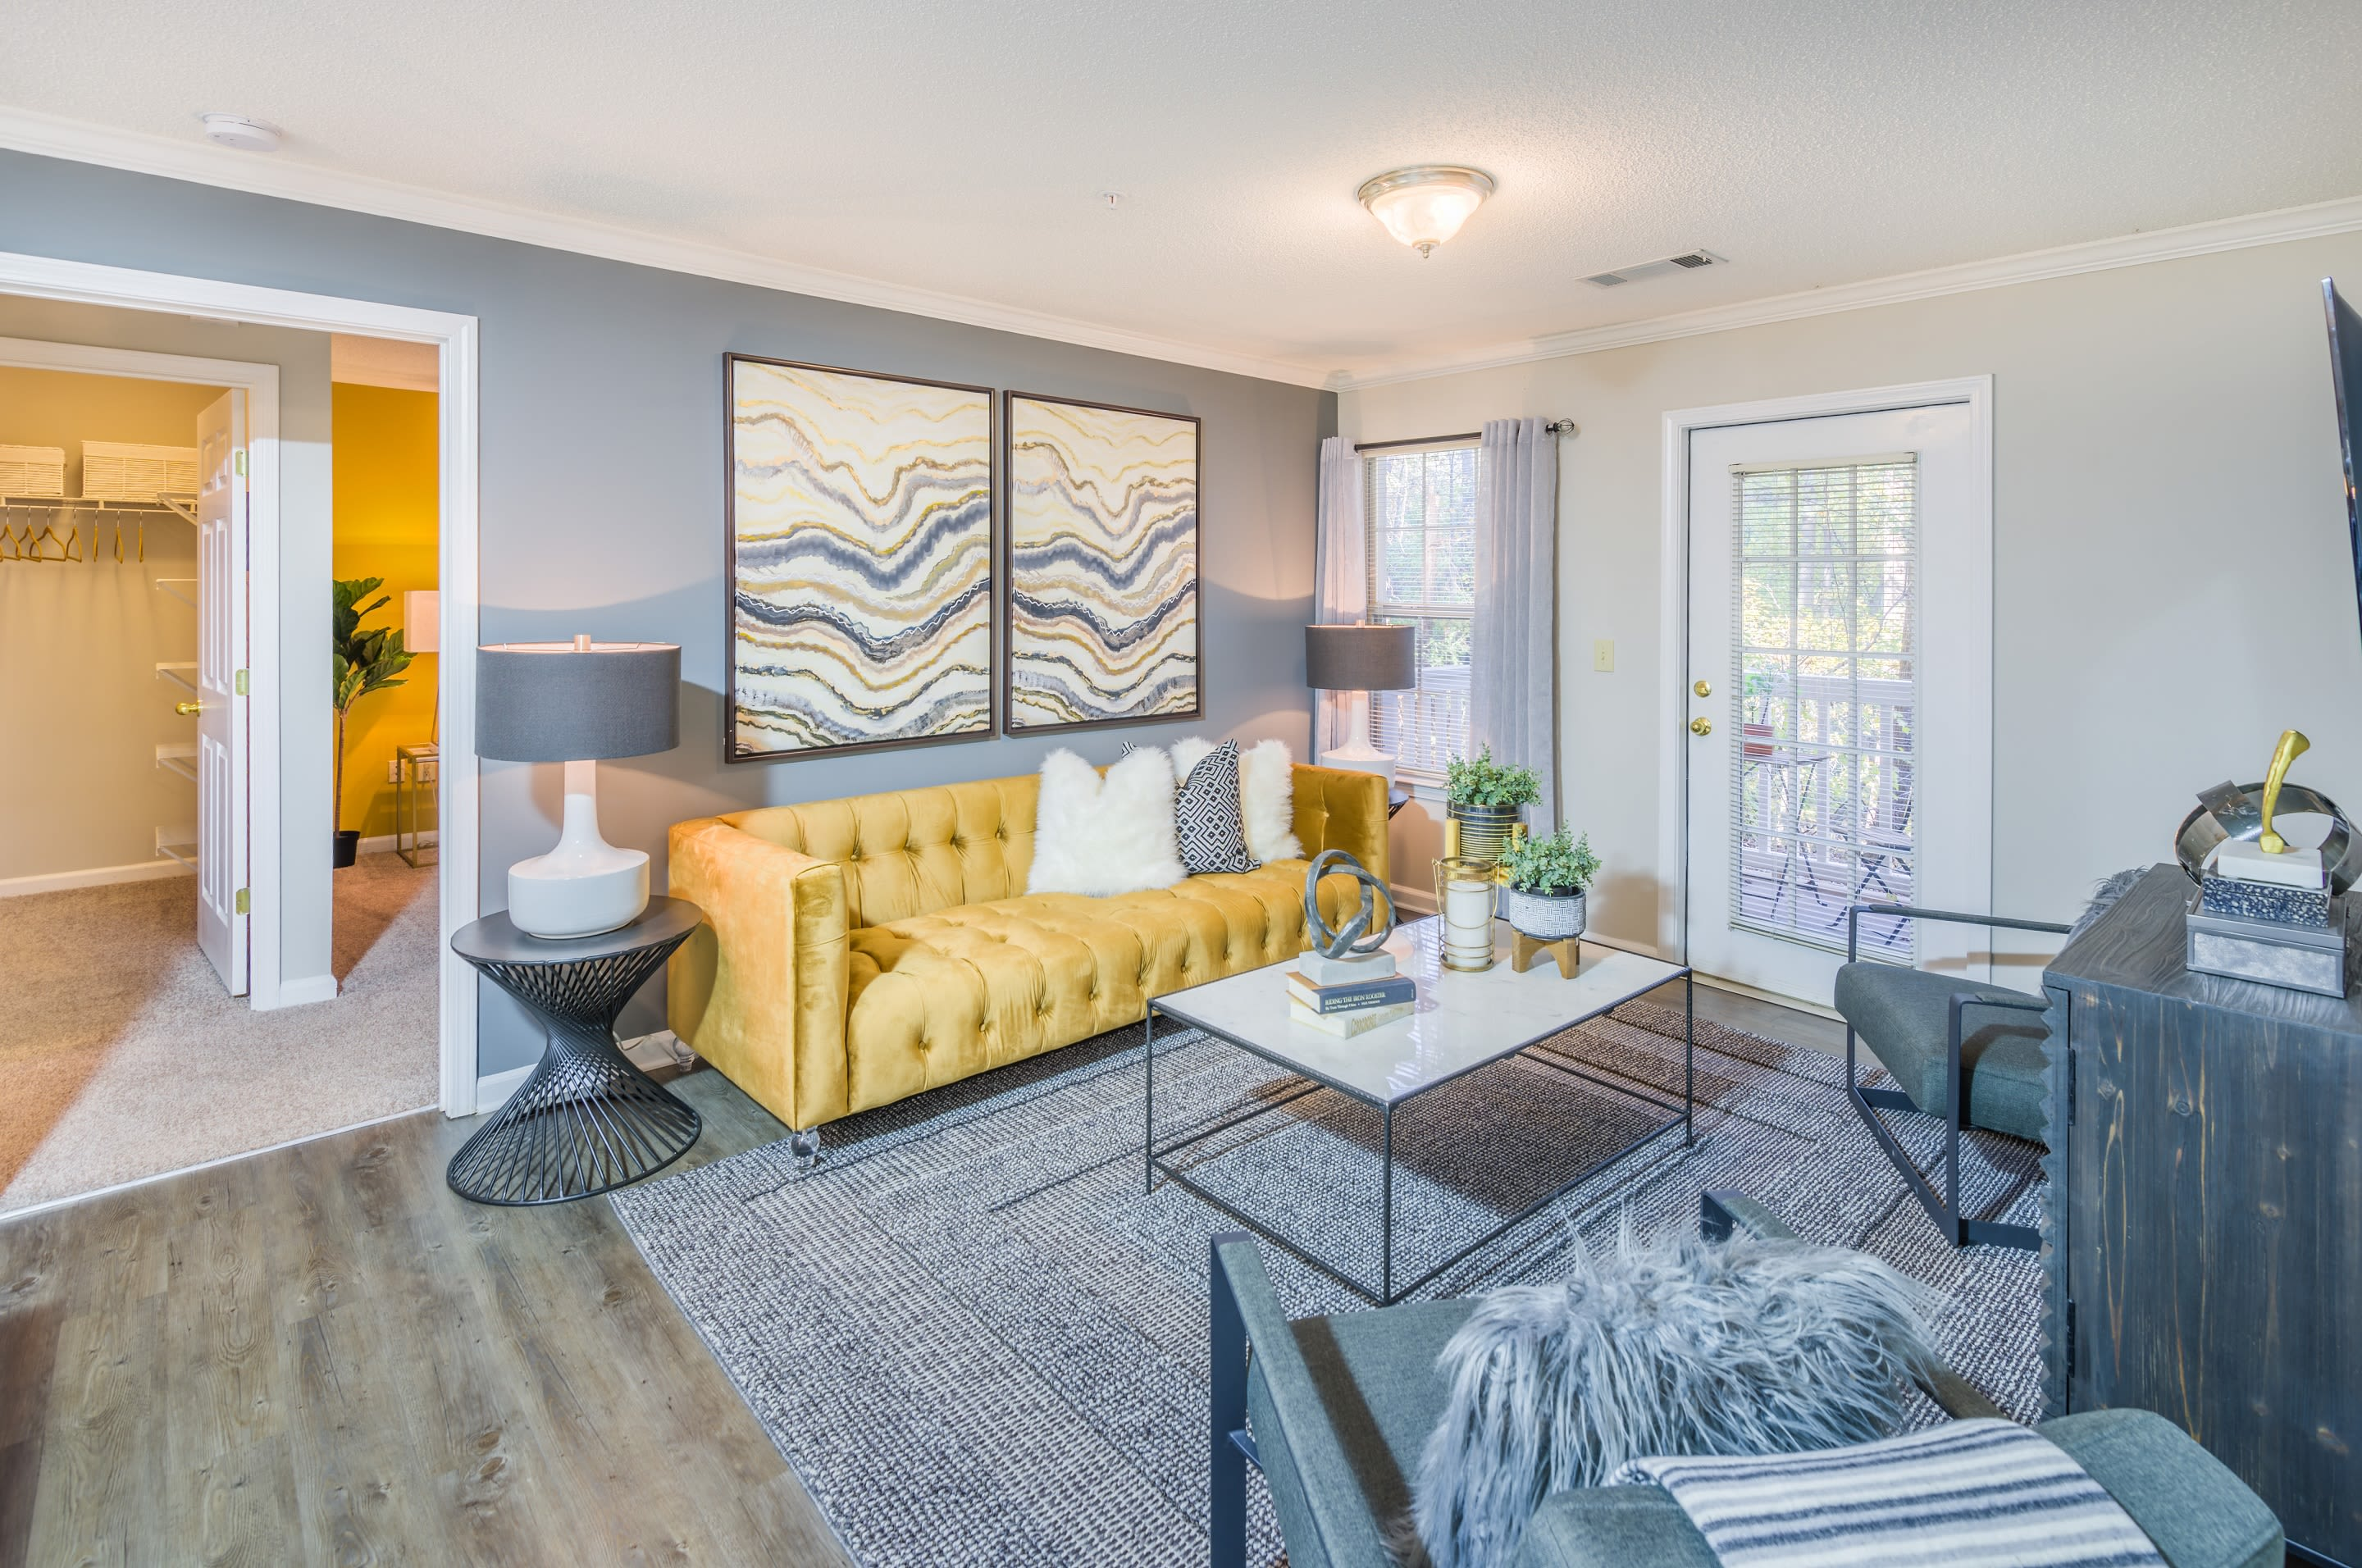 Open concept floor plan with hardwood floors and modern decor at The Oxford in Conyers, Georgia